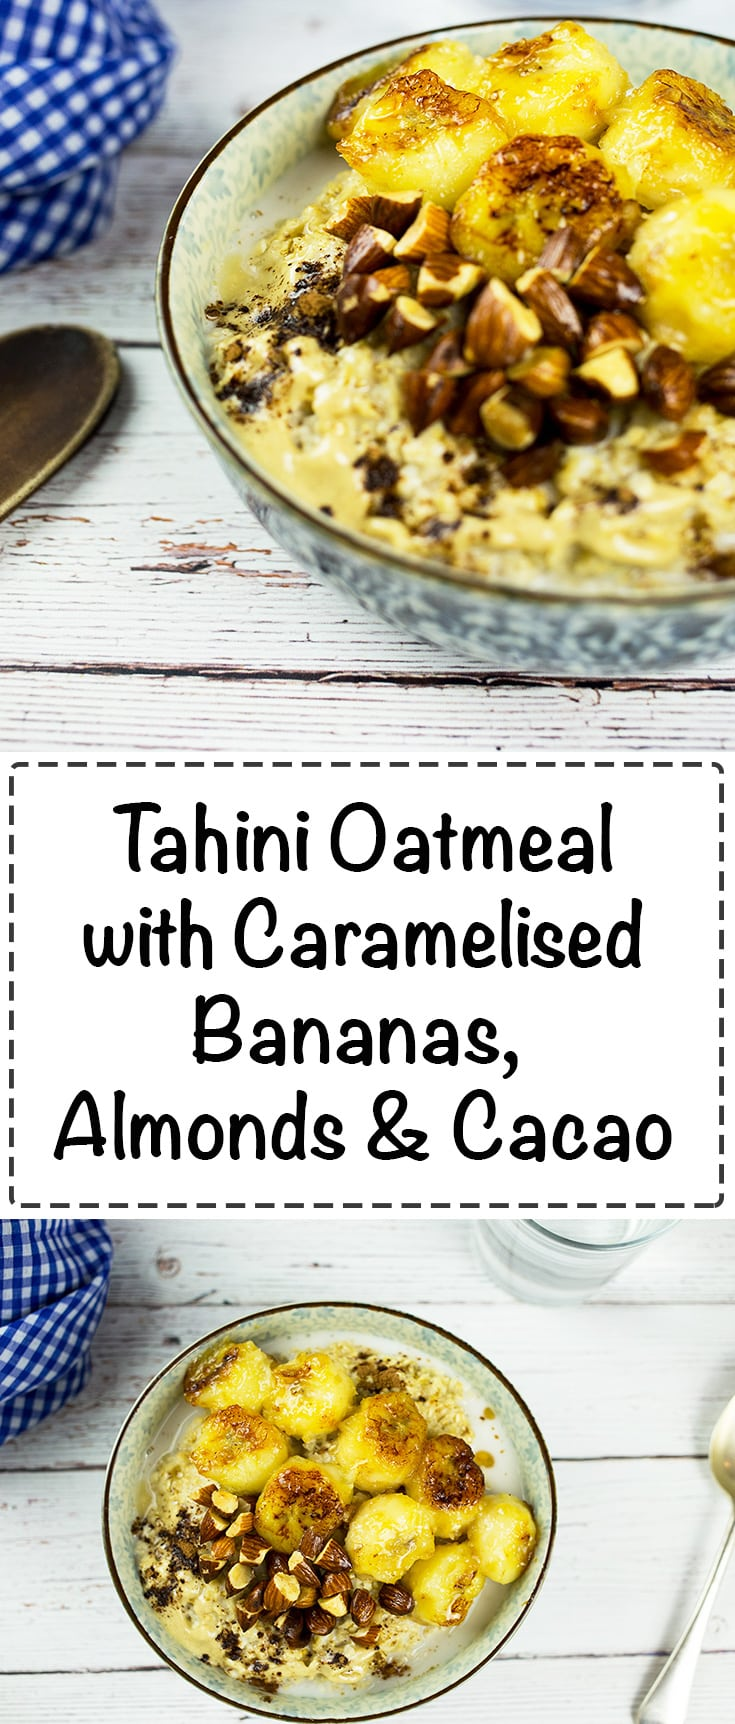 Tahini Oatmeal with Caramelised Bananas, Almonds & Cacao - A nourishing and delicious bowl of oatmeal that will give you a tasty start to the day. Gluten Free/Vegan/DairyFree/Refined Sugar Free